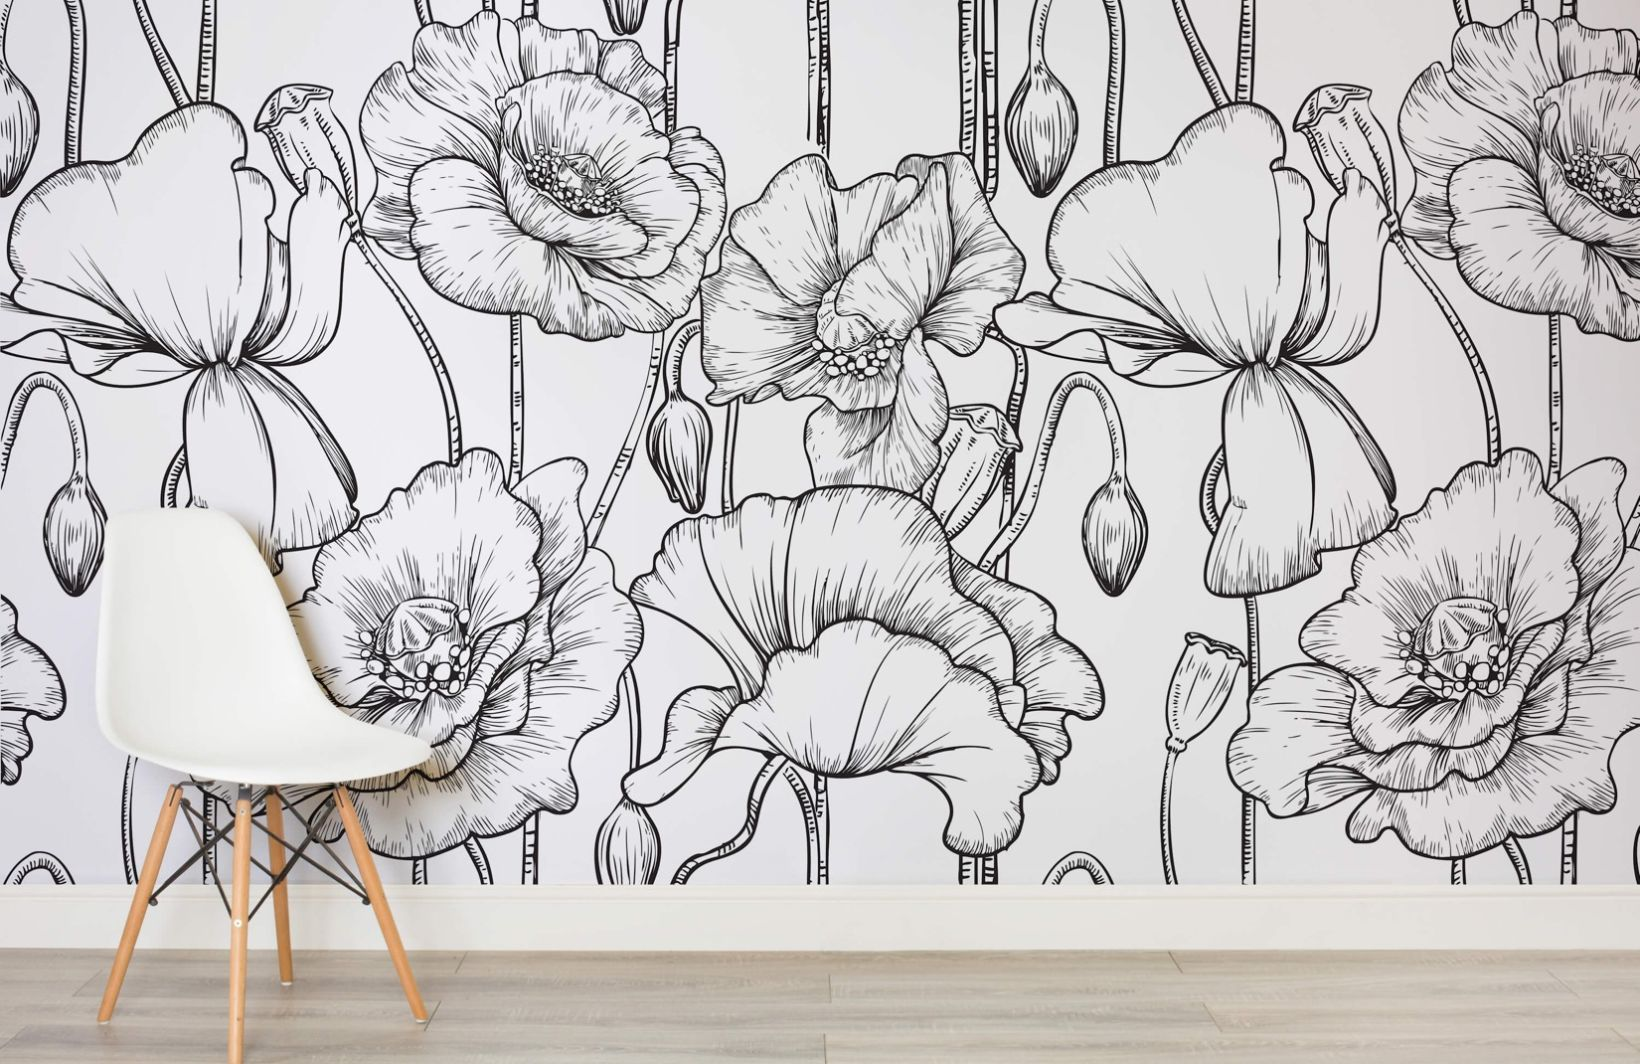 Black and White Illustrated Flowers Mural in 2020 White